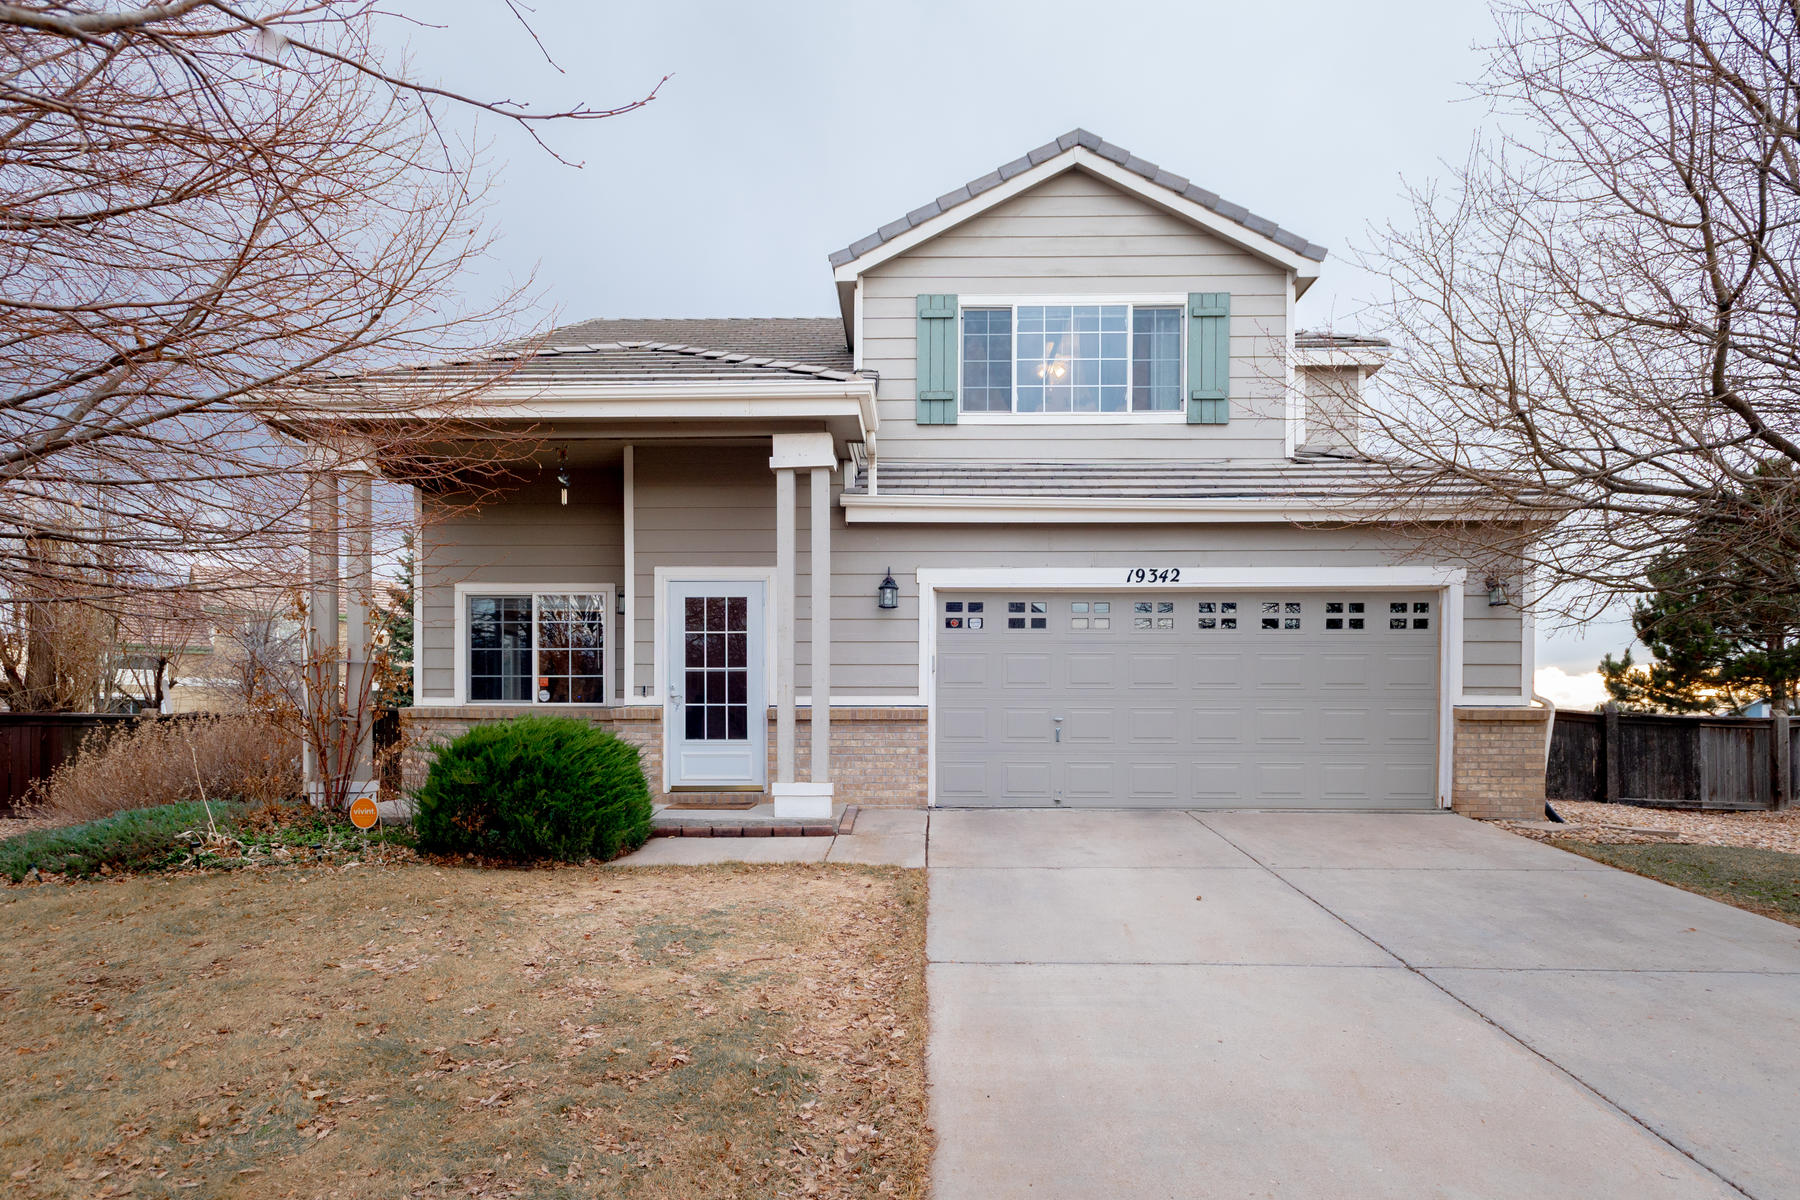 Single Family Homes のために 売買 アット The backyard you have been looking for! 19342 E 58th Place, Aurora, コロラド 80019 アメリカ